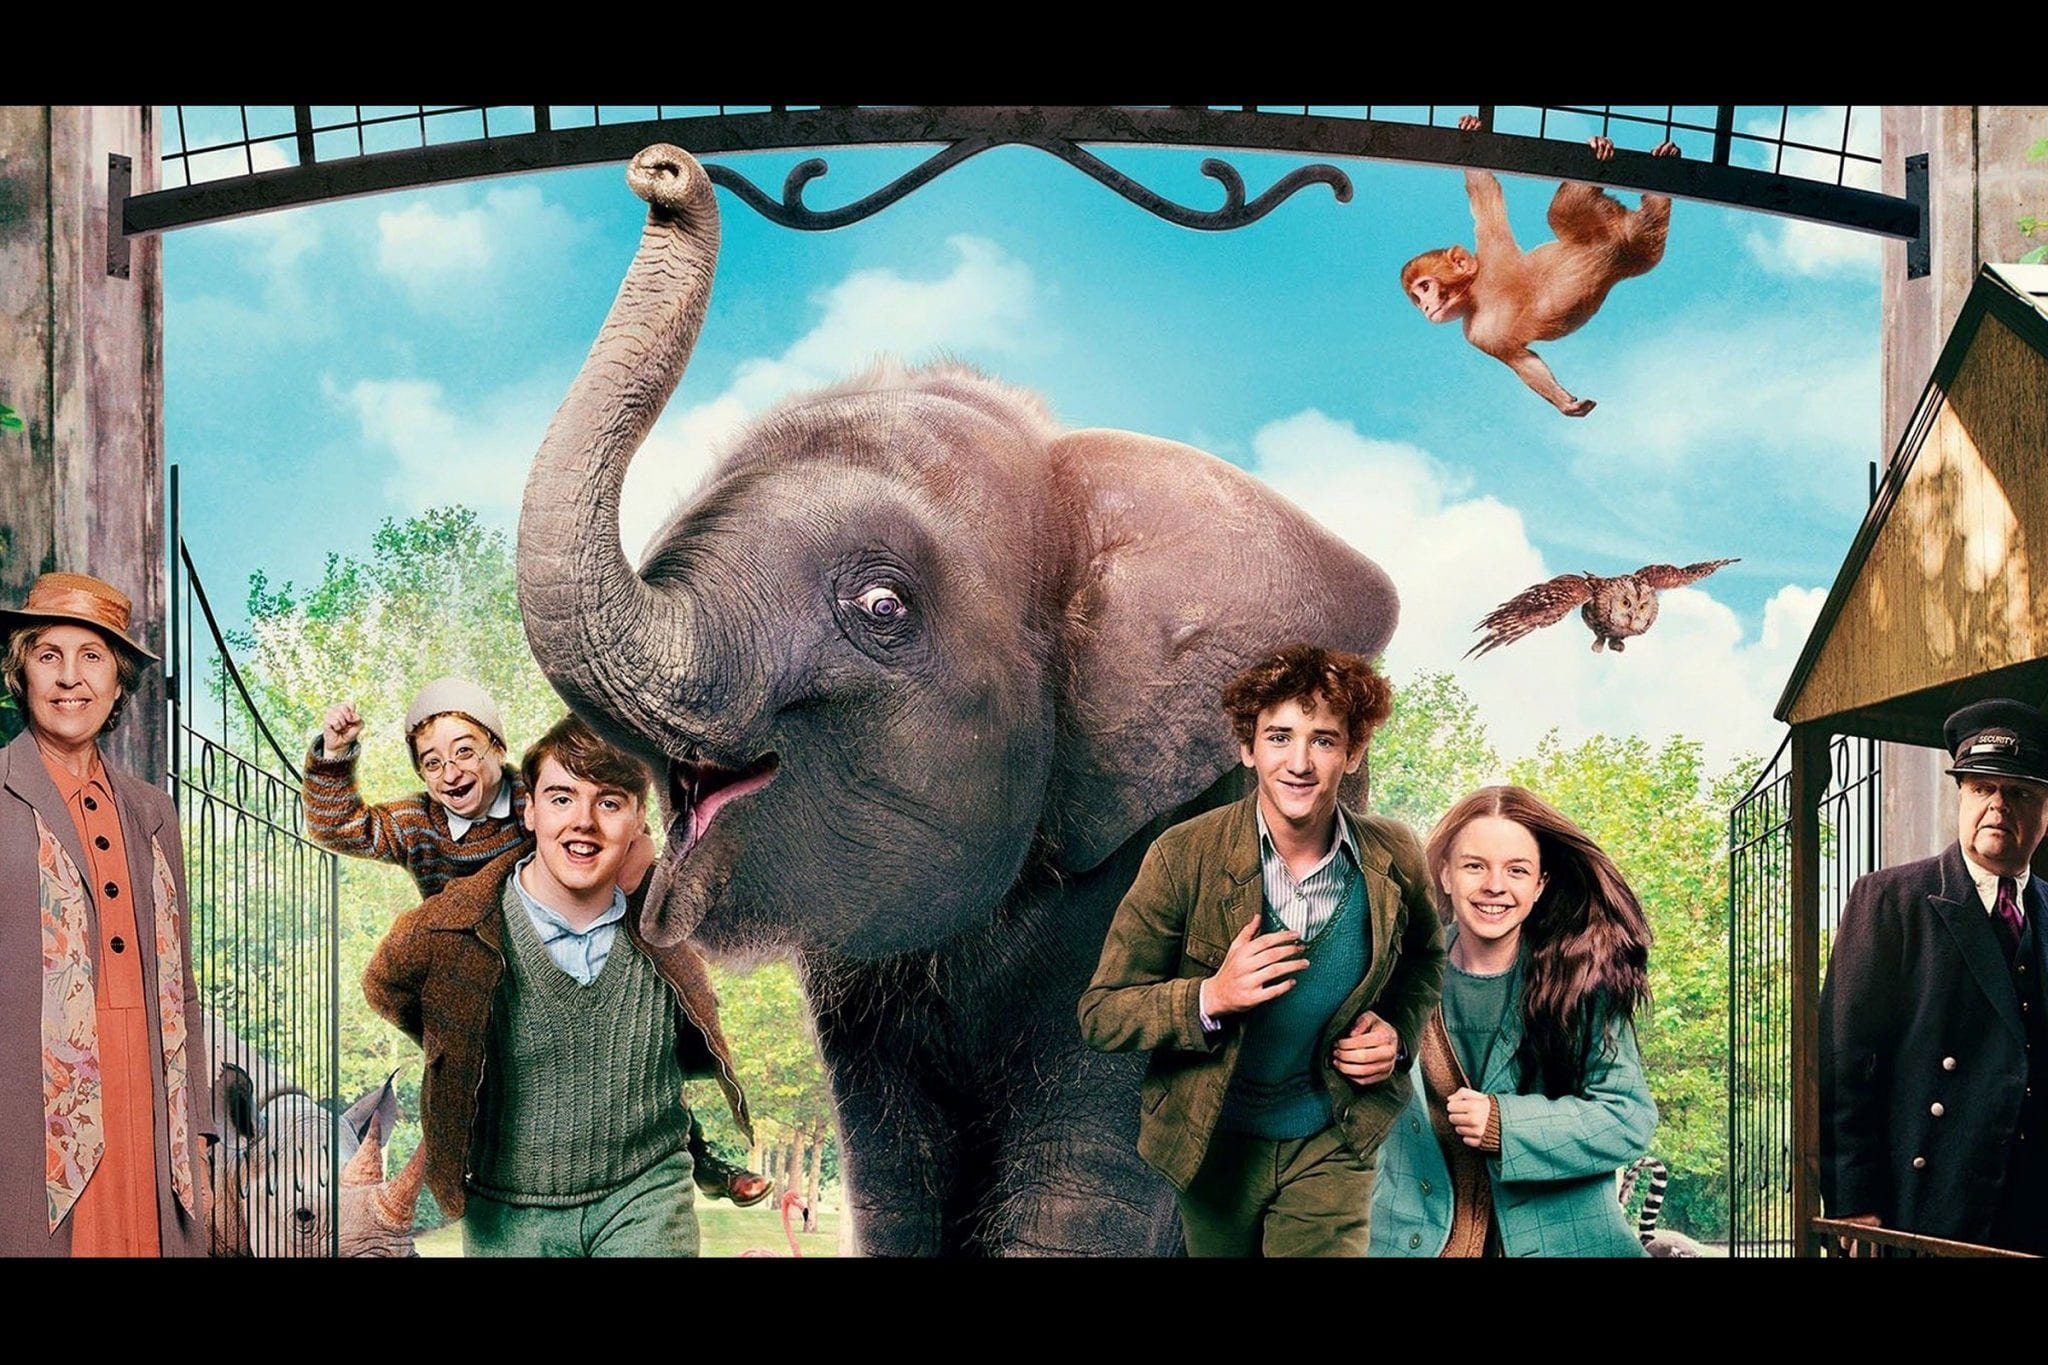 CinemaTivu: Zoo: Un amico da salvare (Uk, Irl 2018), con Art Parkinson, diretto da Colin McIvor, in onda in prima tv, in prime time su Canale5